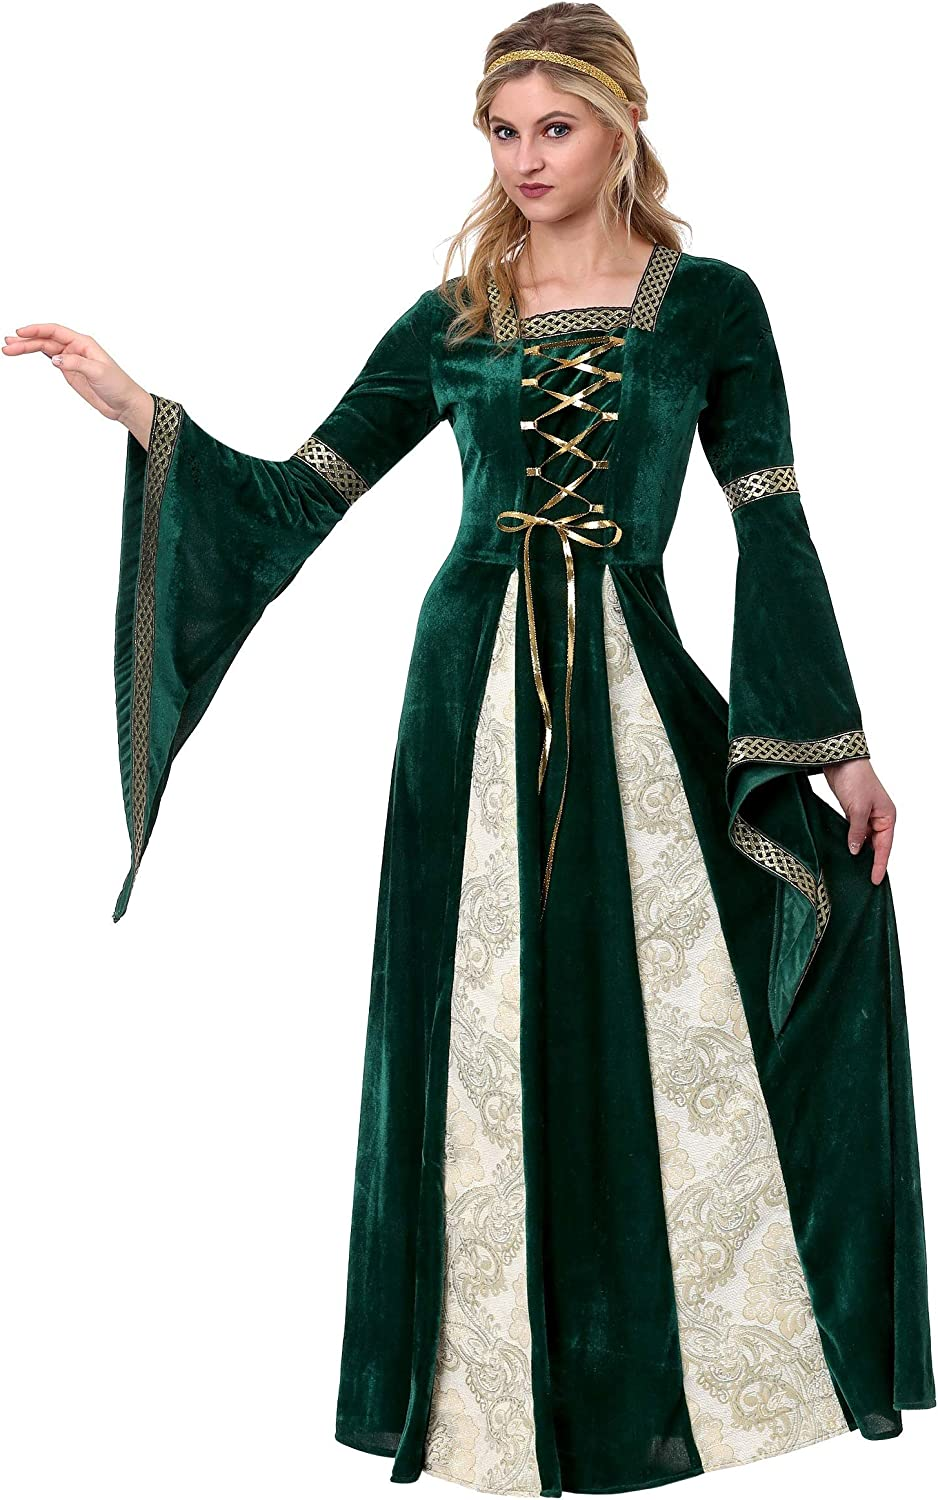 Women's Renaissance Maiden Fancy Dress Costume Small